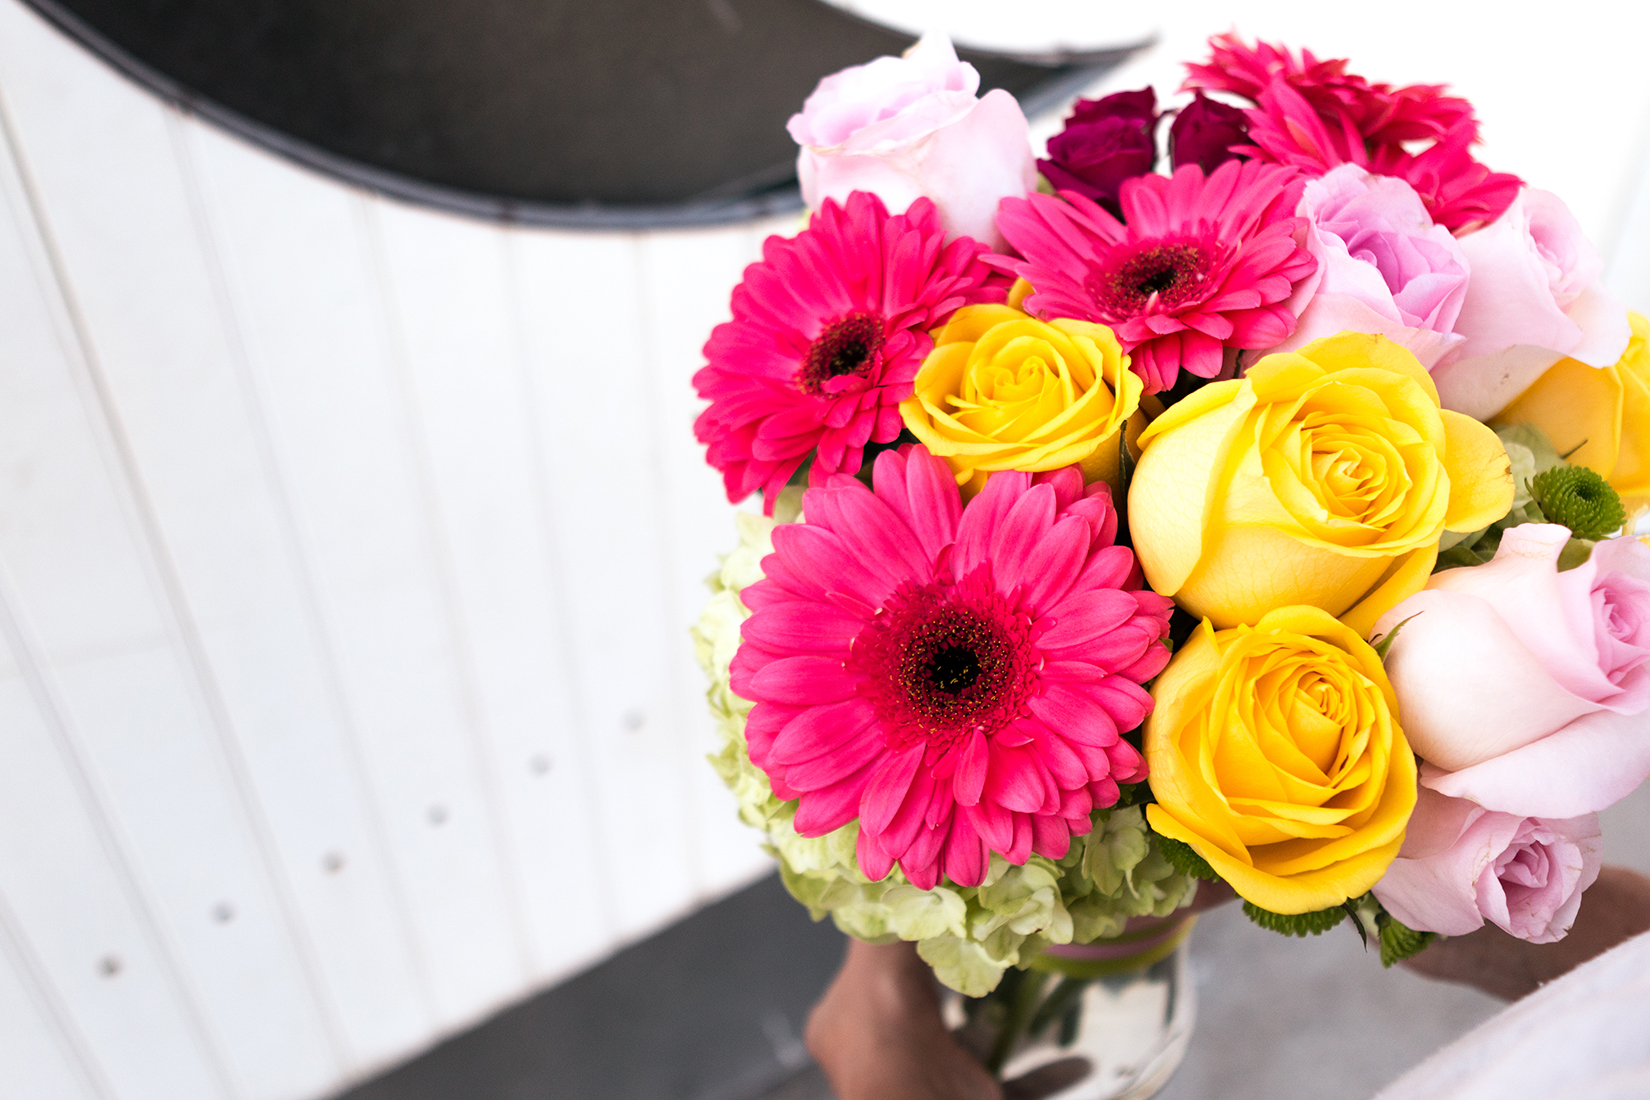 New Baby Flowers You Should Send As A Gift